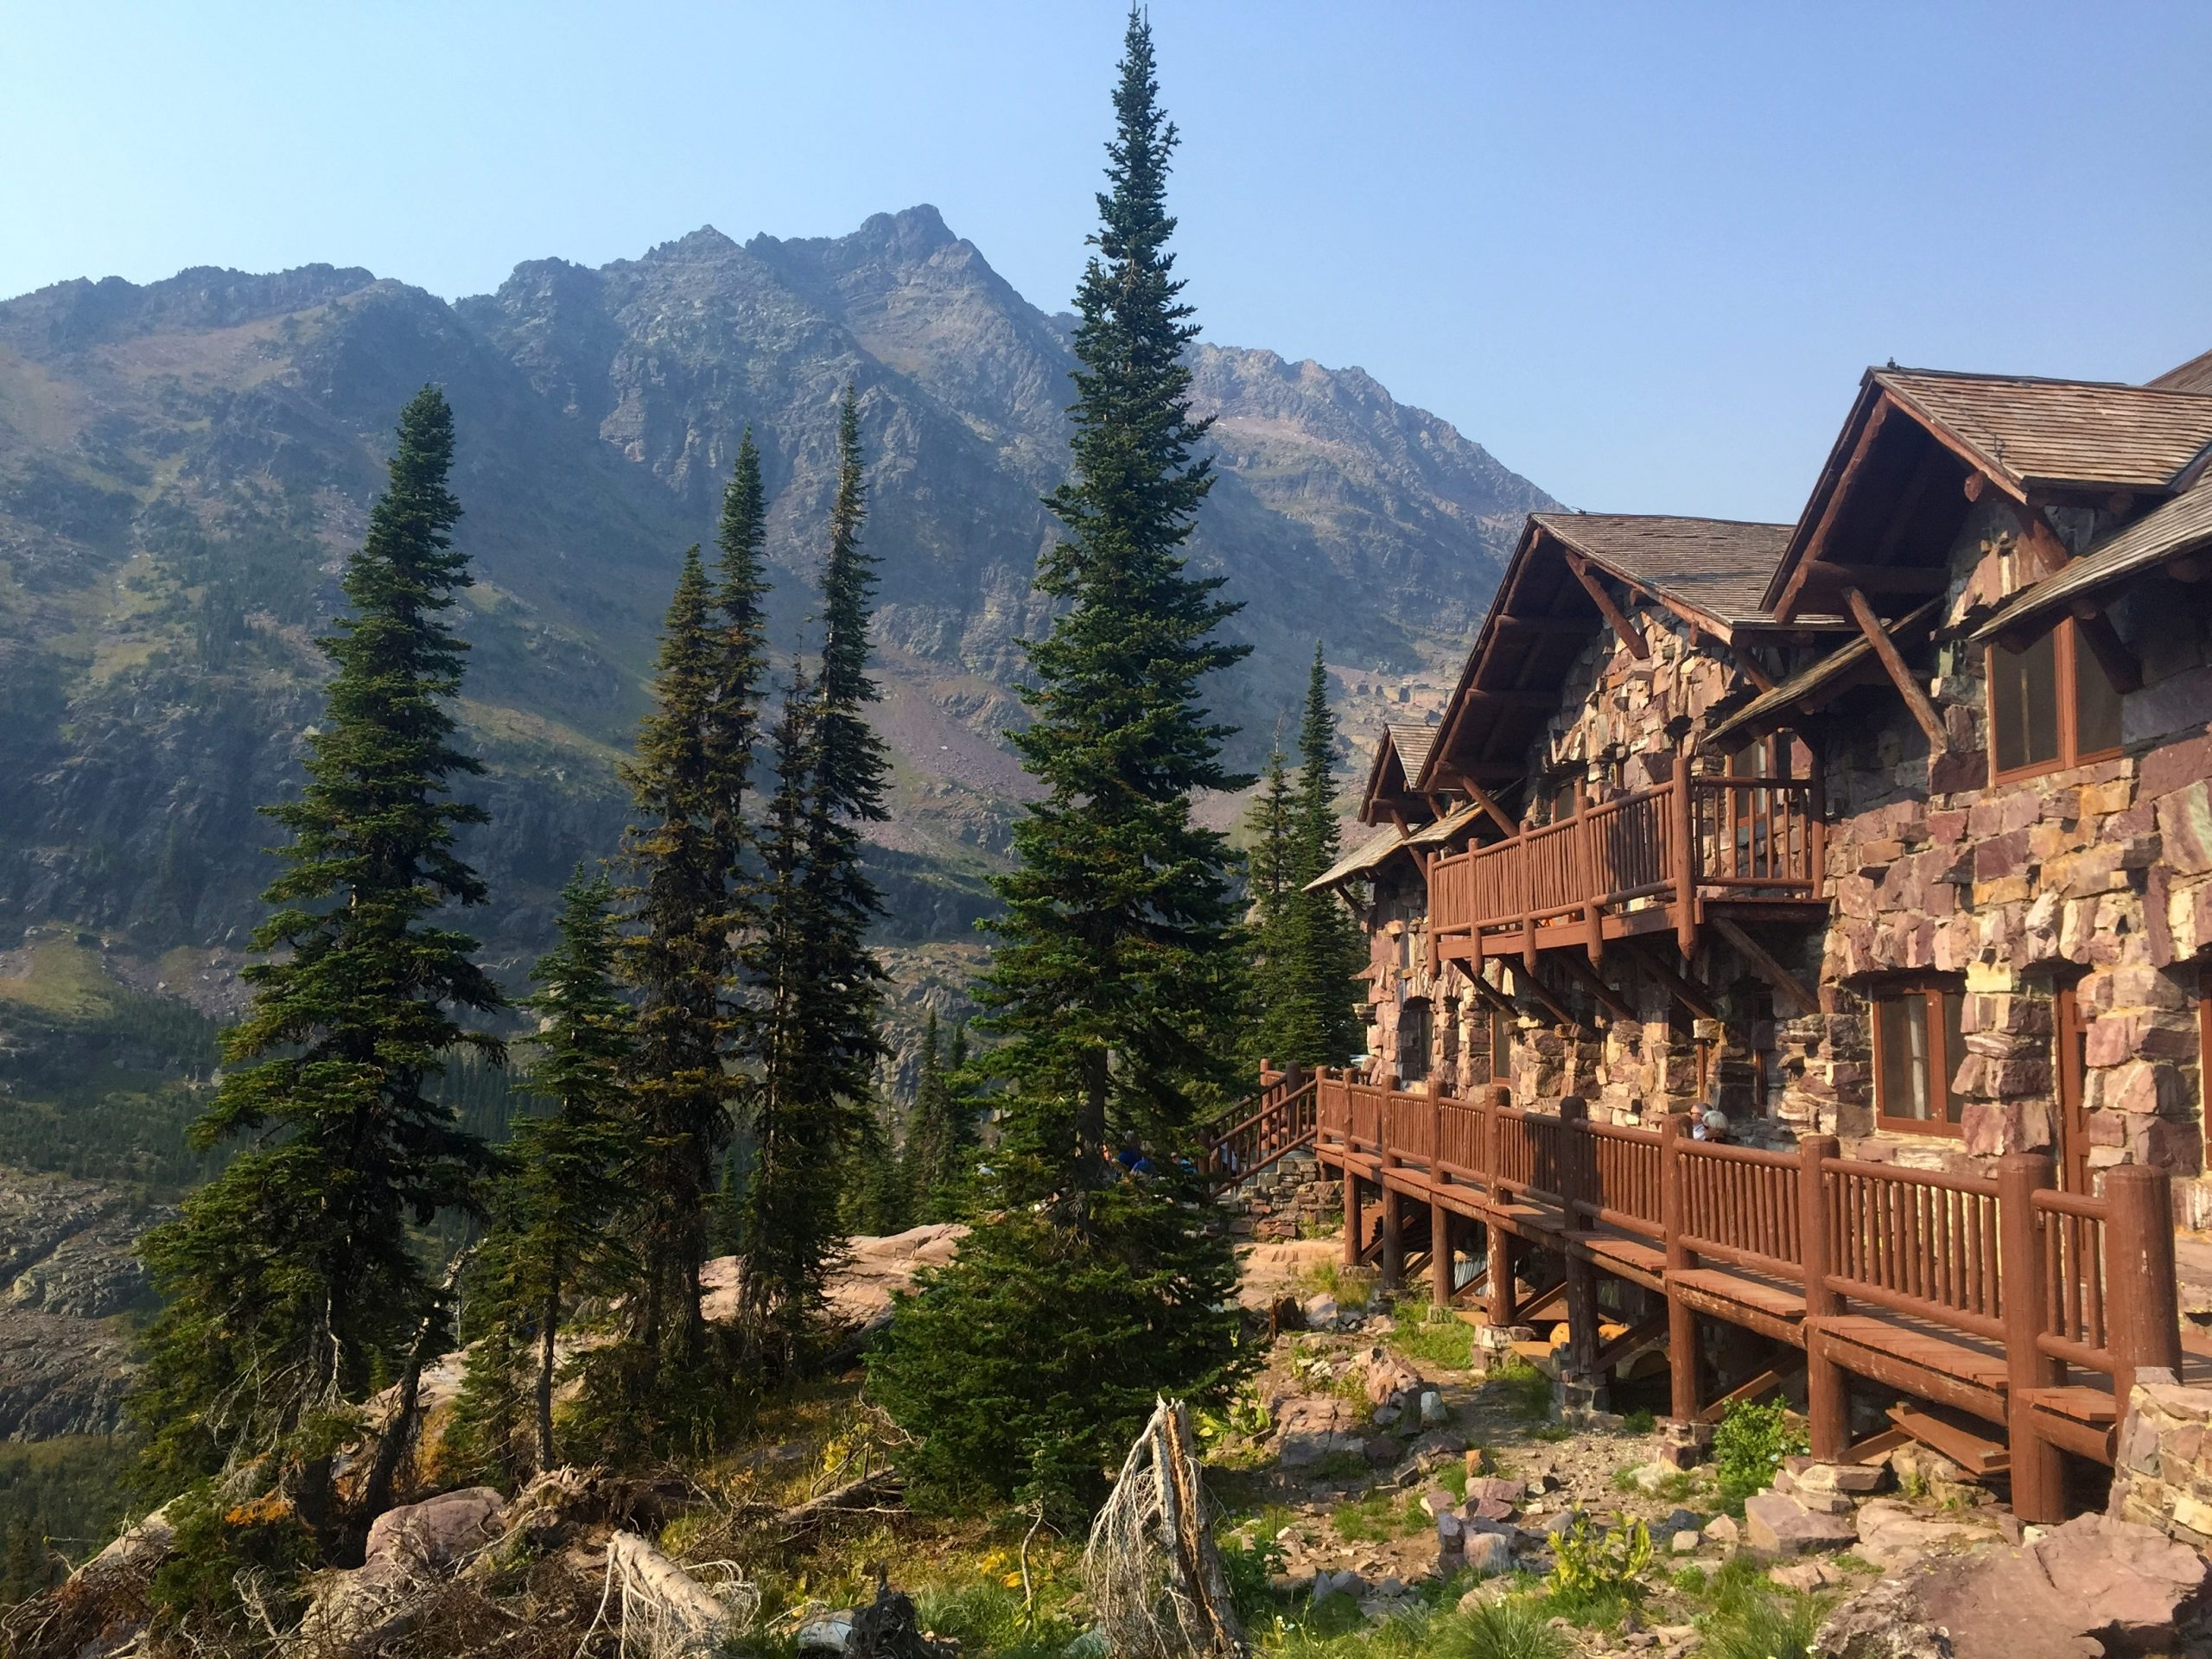 Backcountry Bonus: The Sperry Chalet is Back